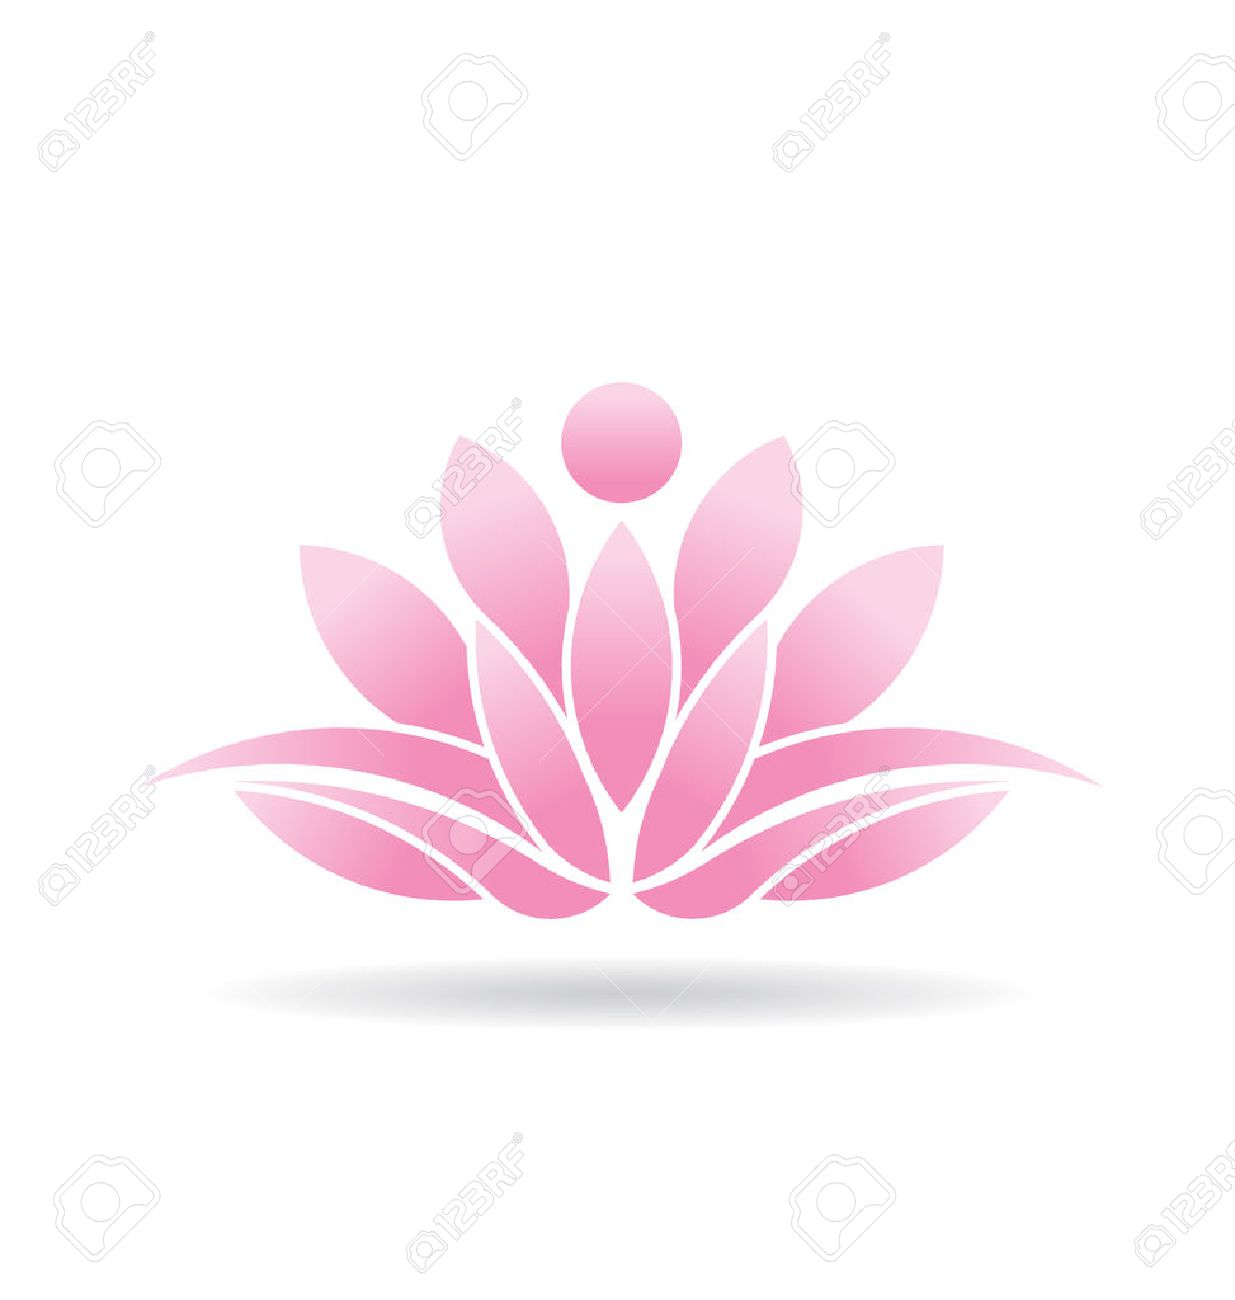 Lotus flower icon royalty free cliparts vectors and stock lotus flower icon stock vector 24475663 dhlflorist Images